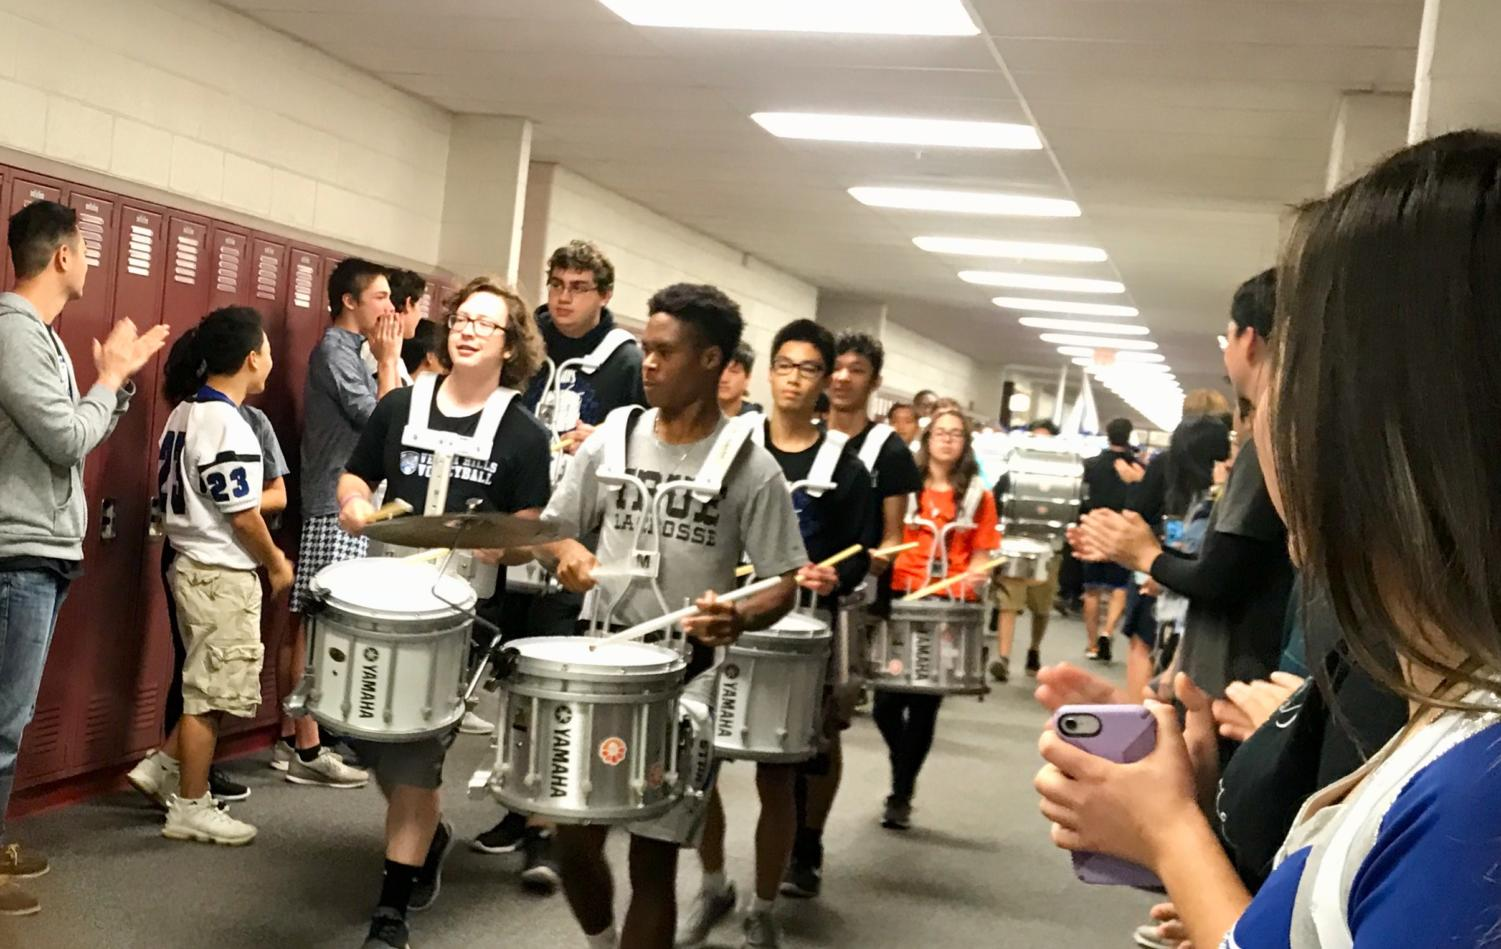 Students line up in the hallway to show their spirit during a televised pep rally.